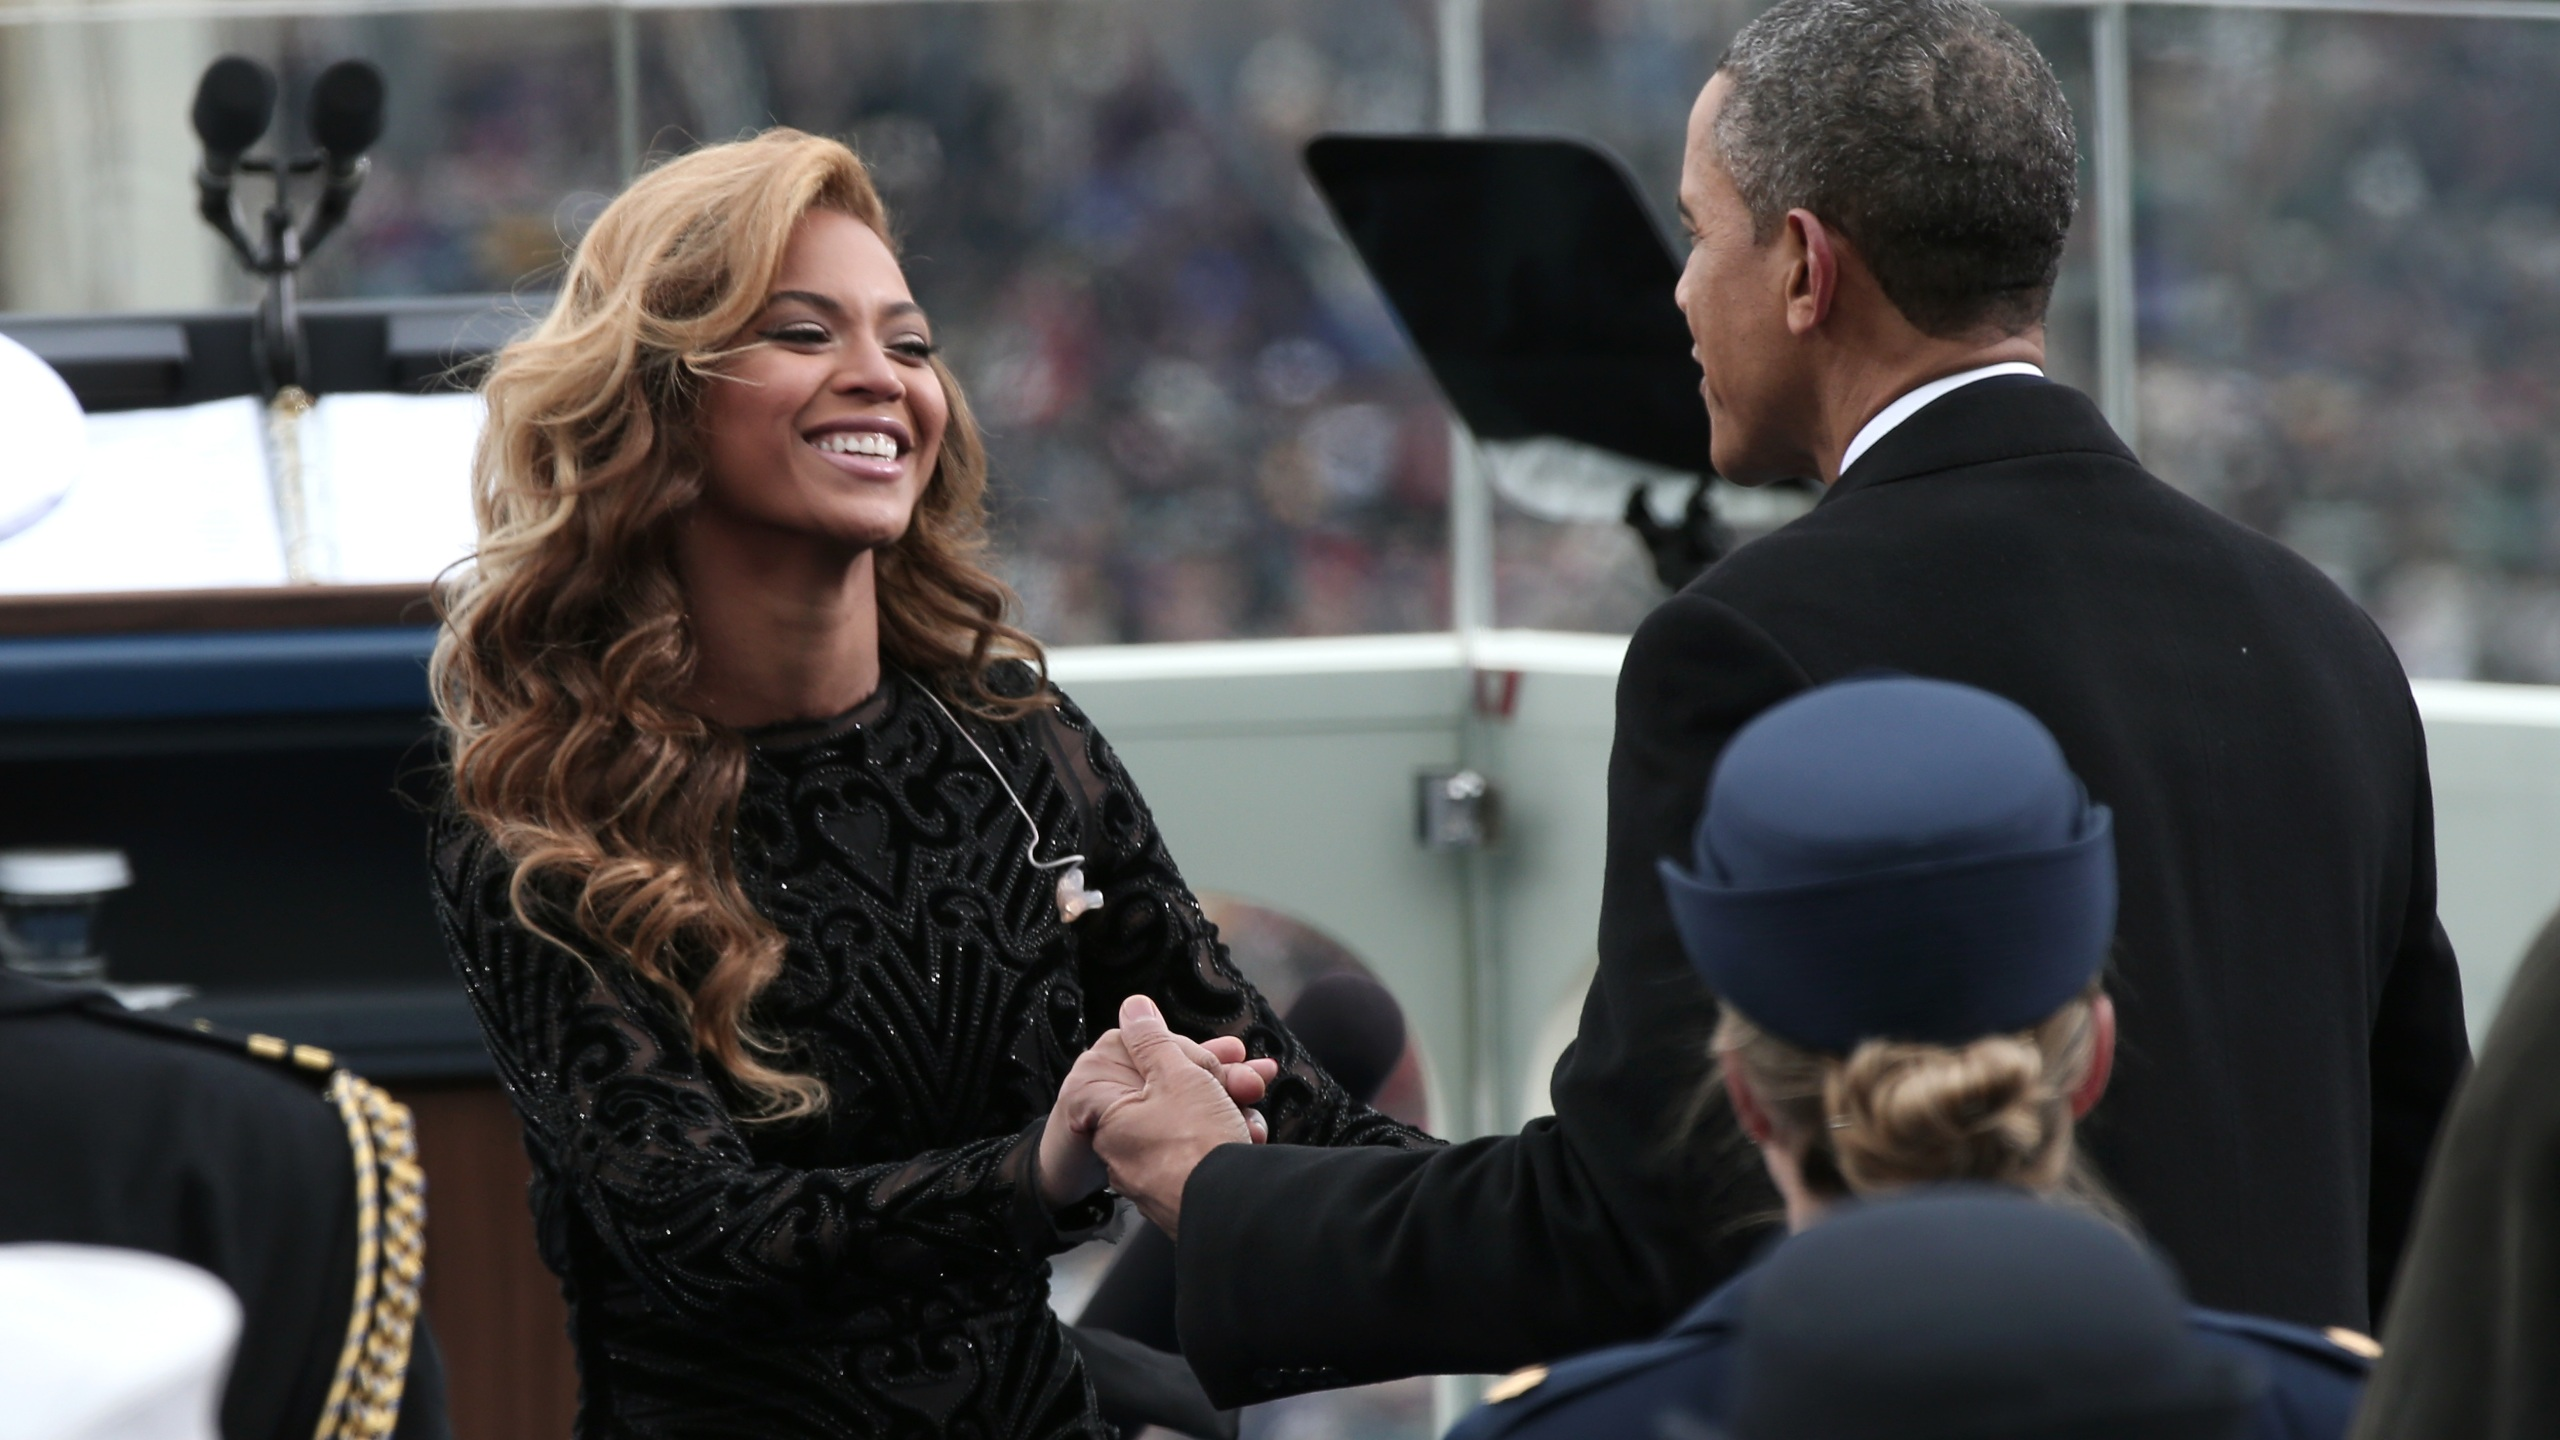 President Barack Obama greets singer Beyonce after she performs the National Anthem during the public ceremonial inauguration on the West Front of the U.S. Capitol Jan. 21, 2013. (Win McNamee/Getty Images)